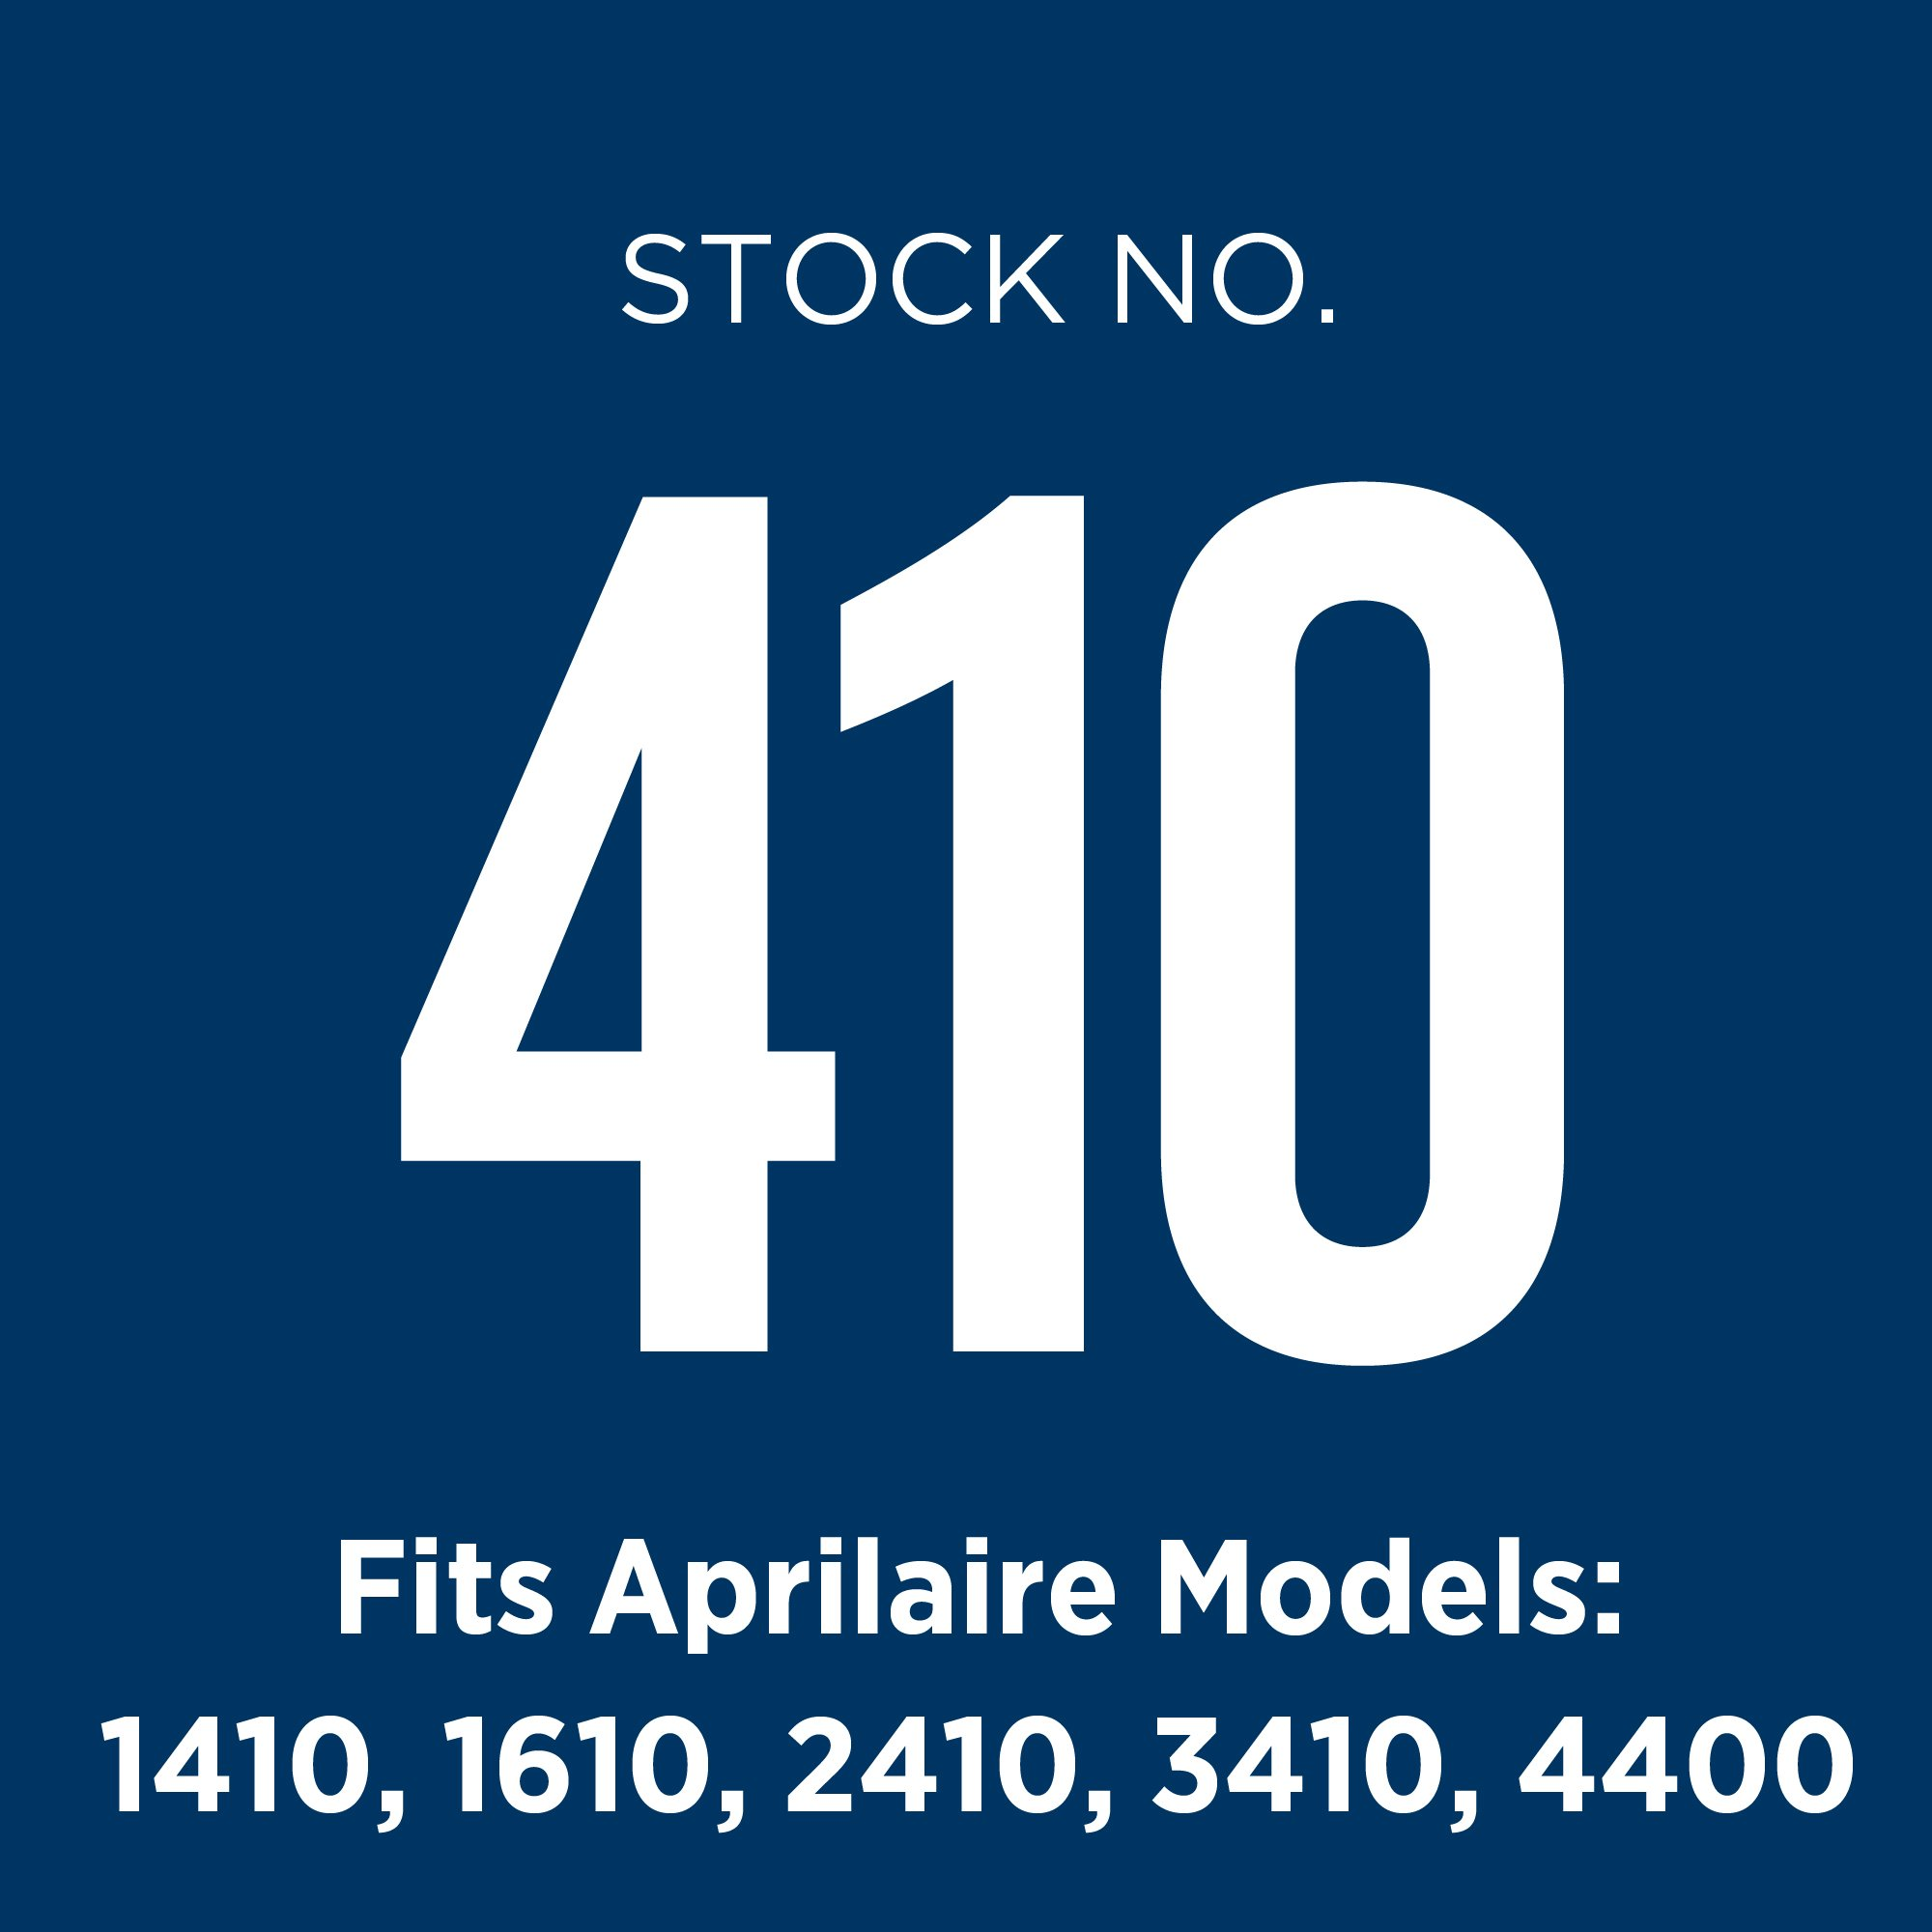 Aprilaire 410 Air Filter 8 Pack for Air Purifier Models 1410, 1610, 2410, 3410, 4400 by Aprilaire (Image #8)